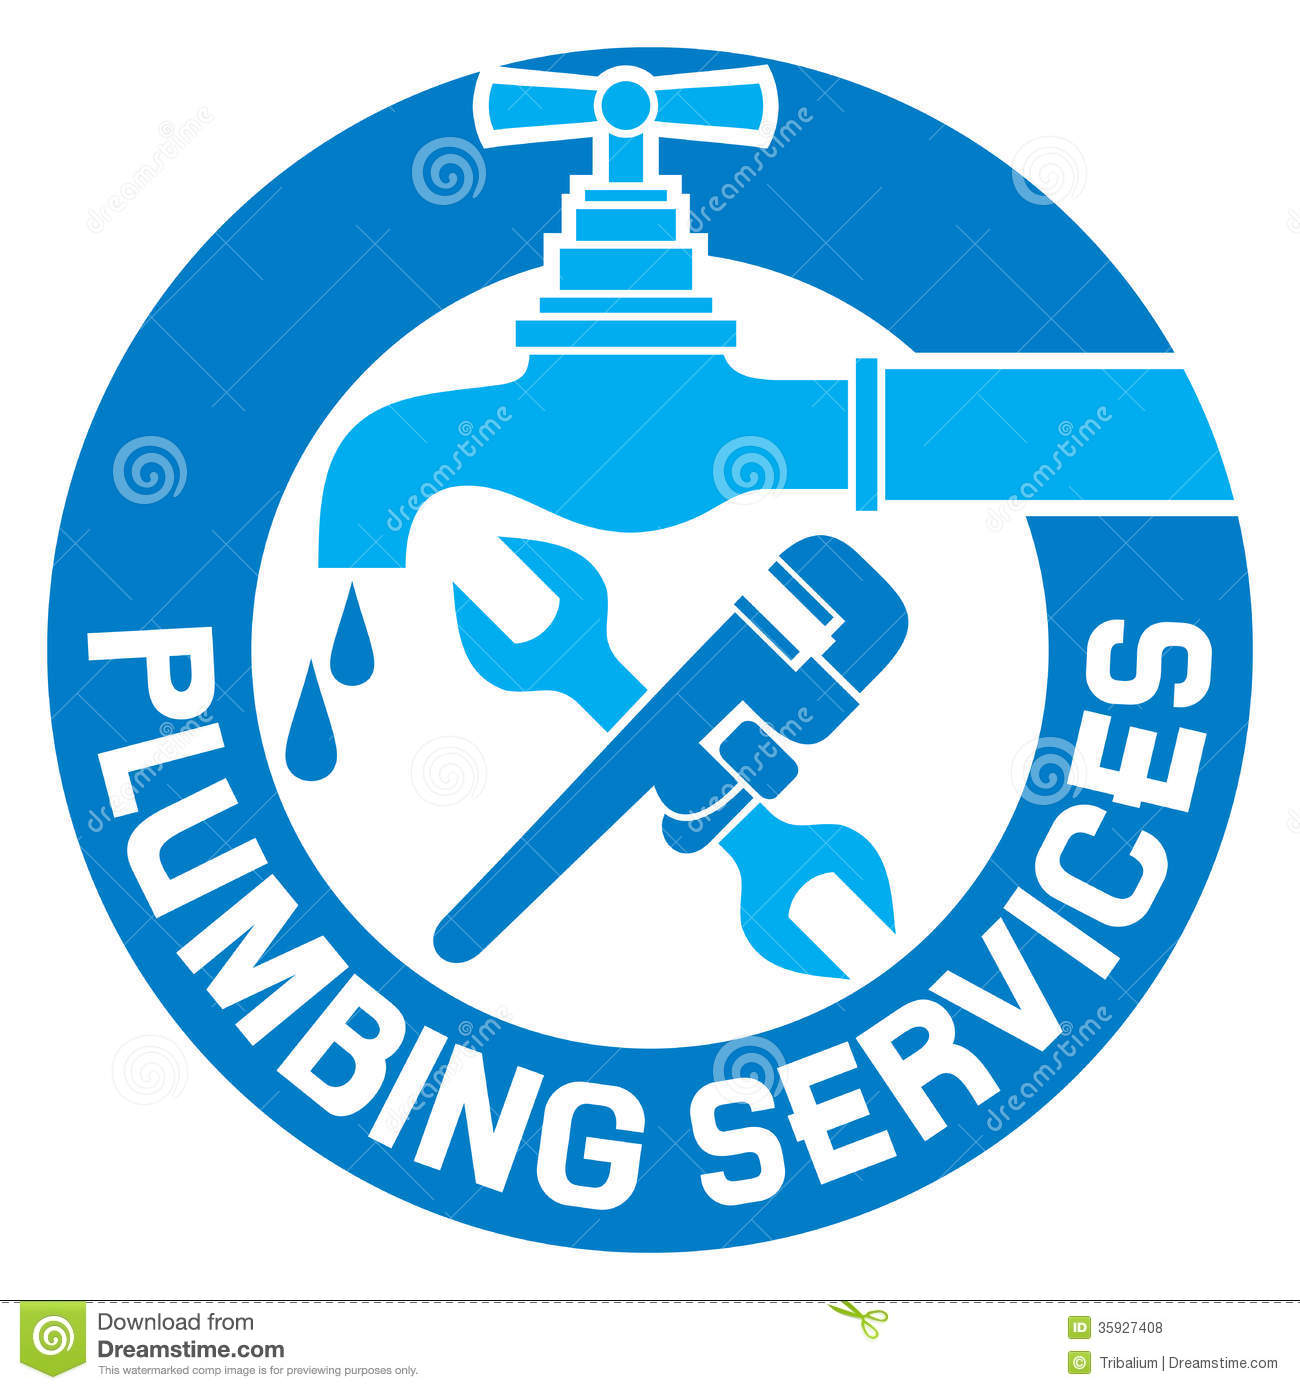 Library of free plumbing logos banner transparent library.